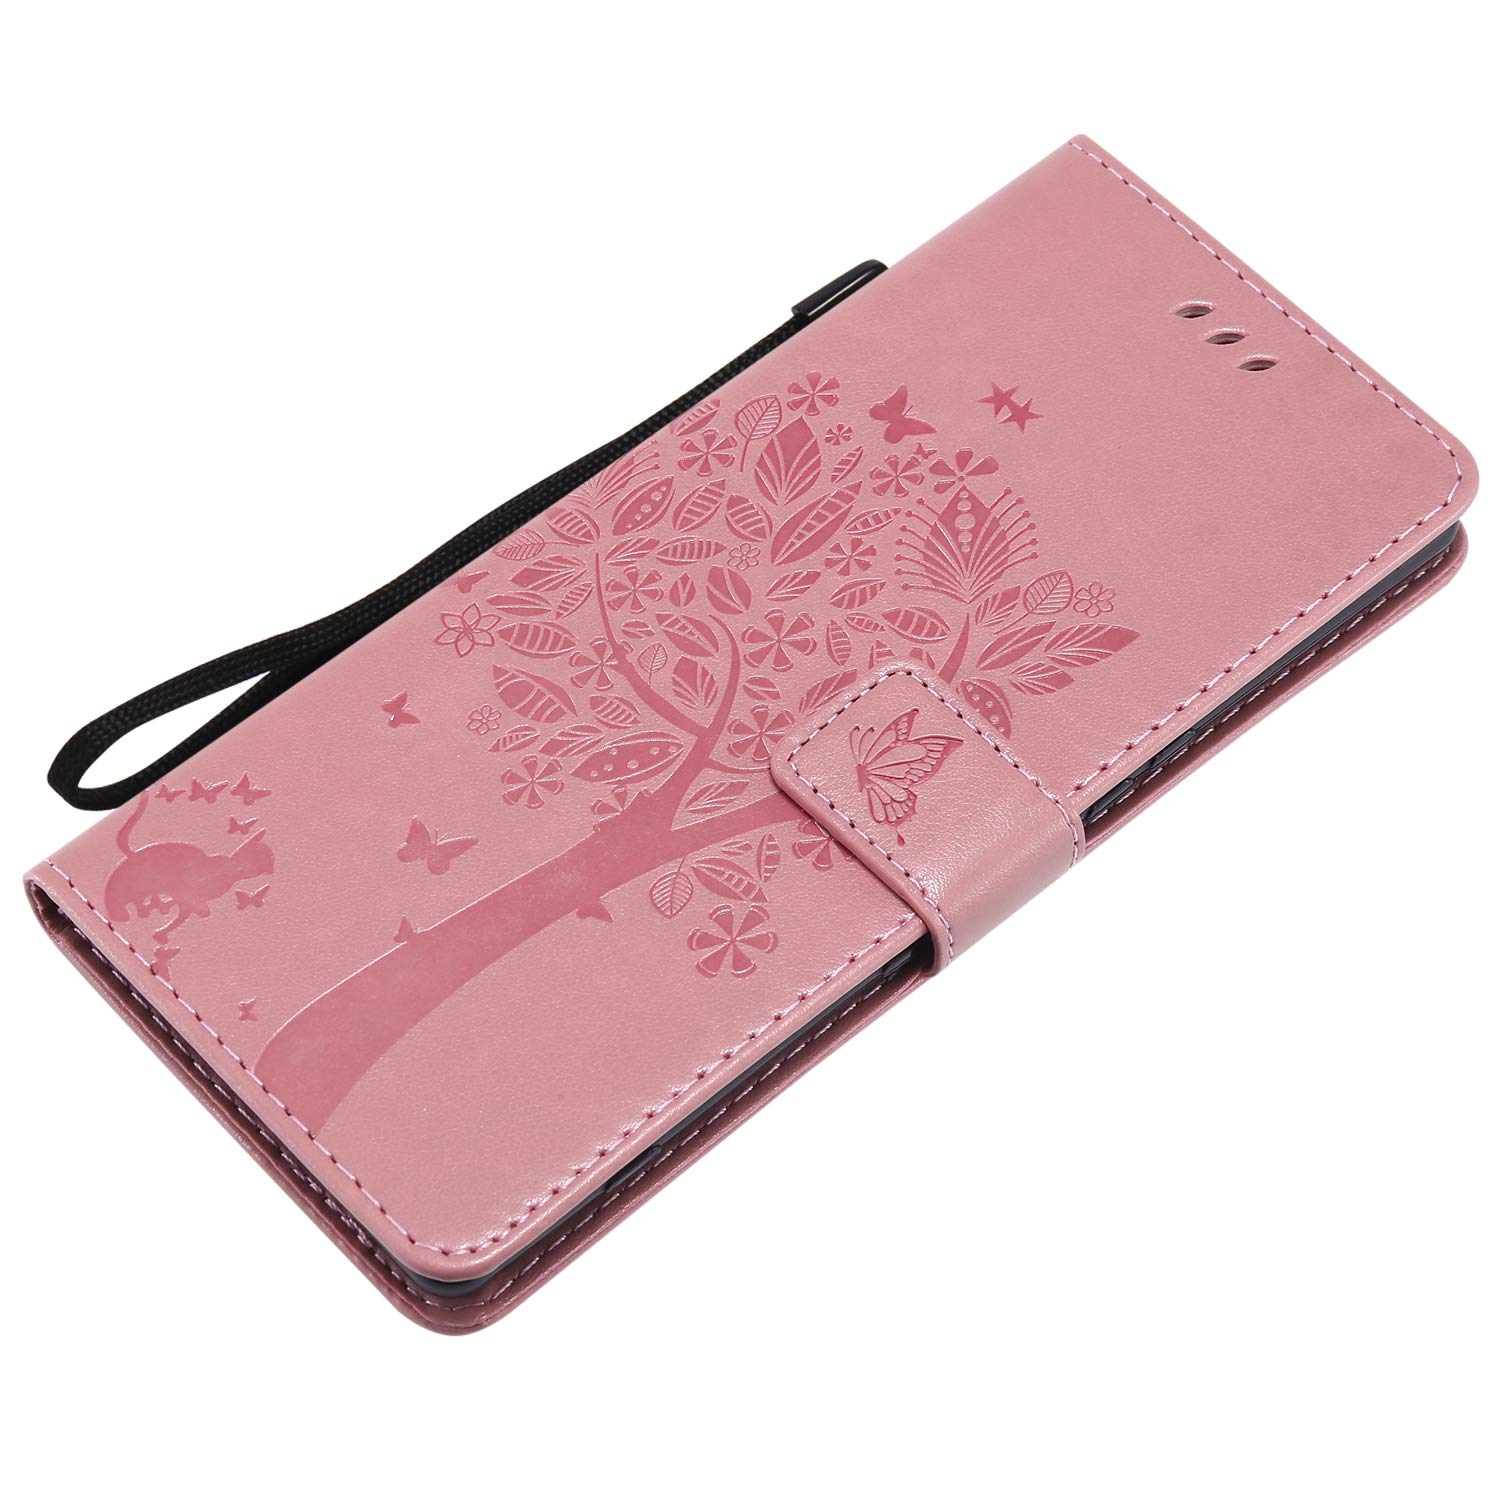 SKYXD 3D Vintage Embossed Love Tree Cat Butterfly Pattern Premium PU Leather Flip Wallet Case for Sony XZ4 Creative Embossing Floral Flower Purse Cover with Wrist Strap Light Purple